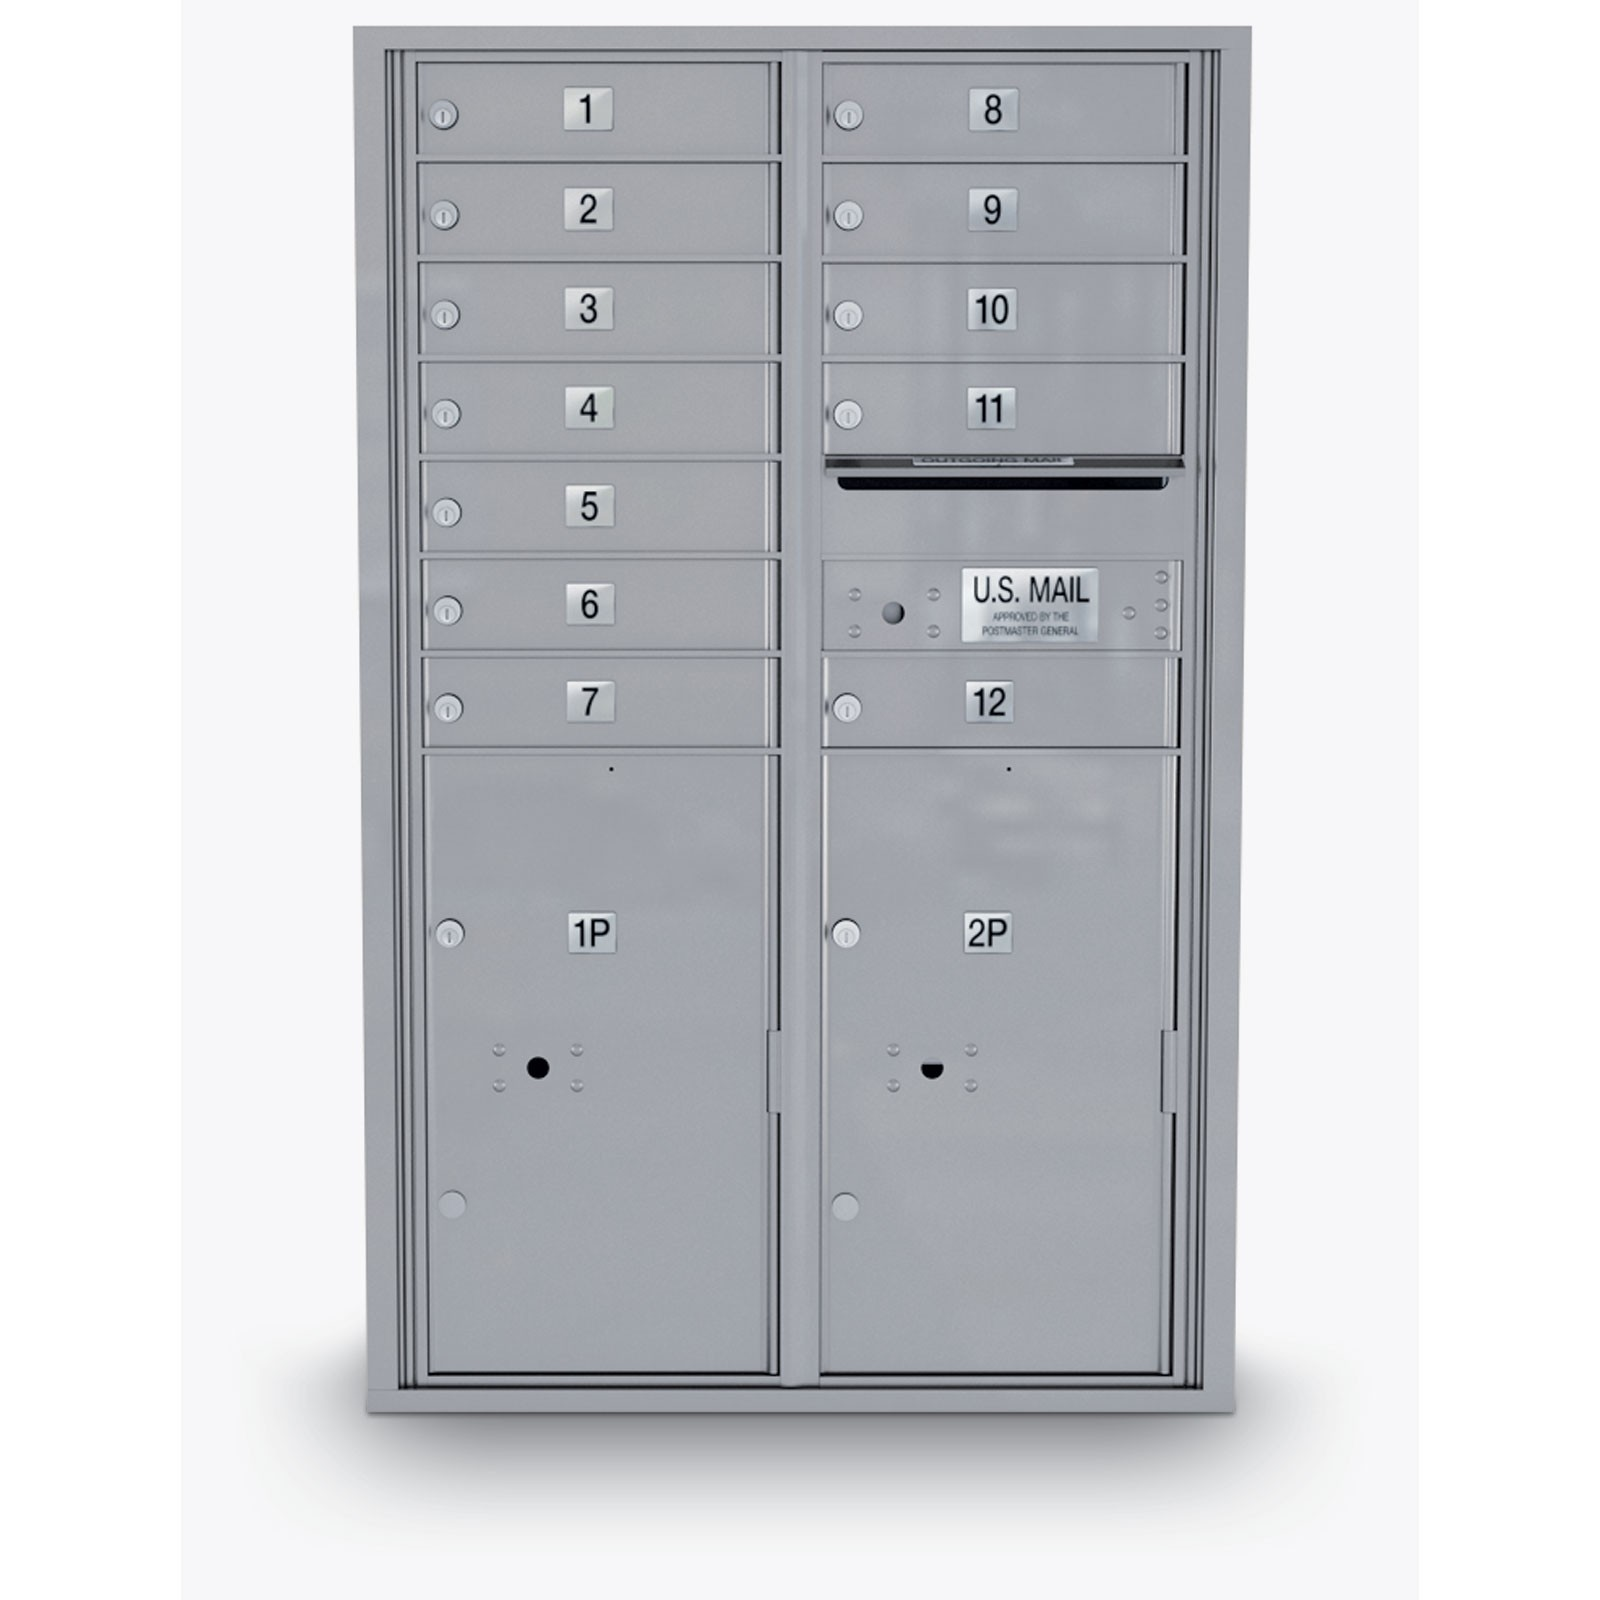 12 Door 4C Horizontal Mailbox - 2 Parcel Lockers